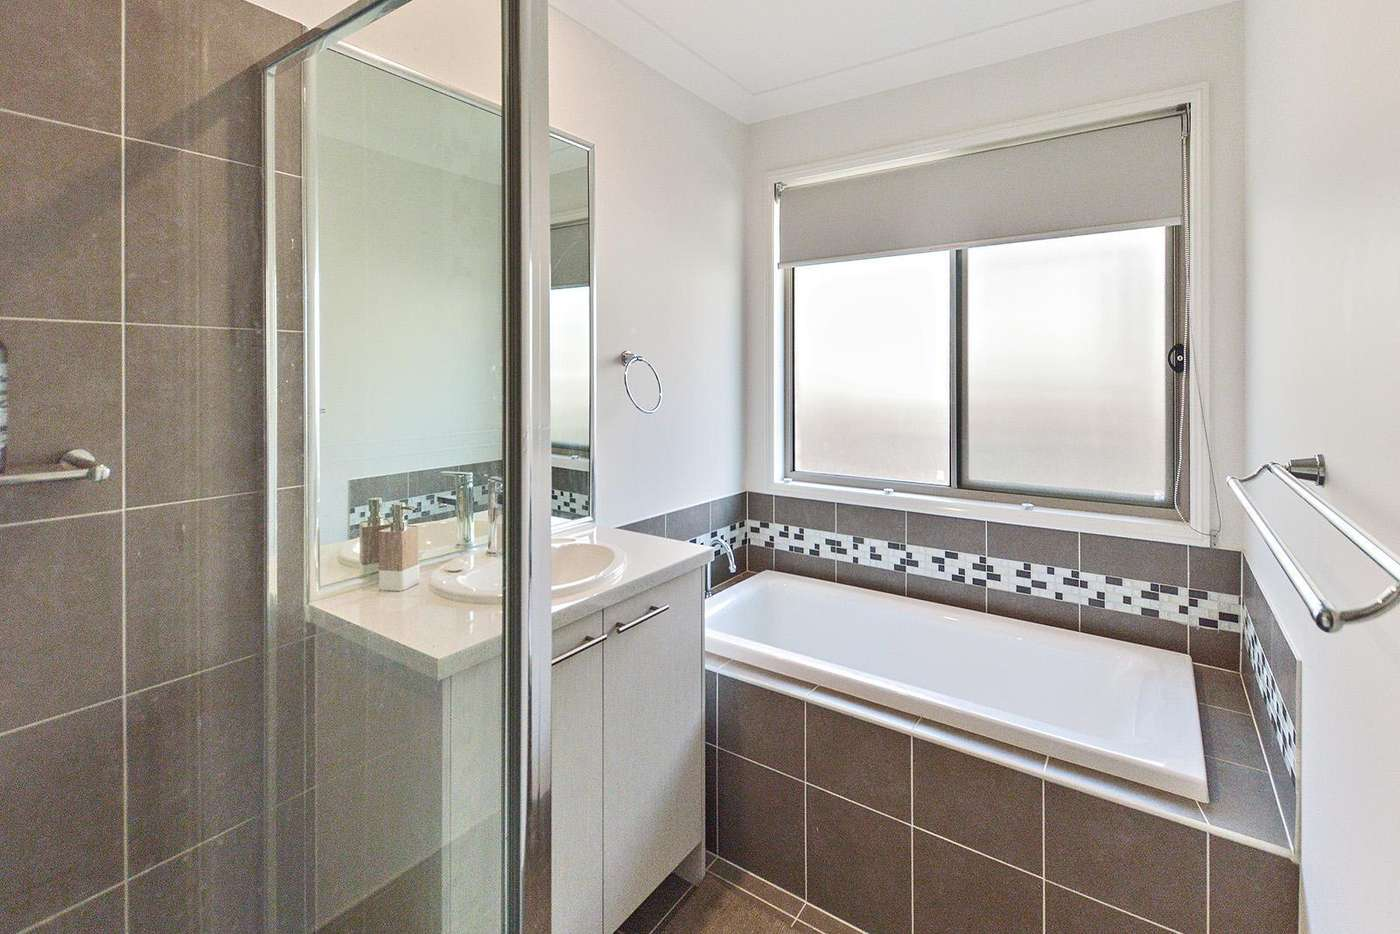 Seventh view of Homely house listing, 3 Koda Street, Ripley QLD 4306